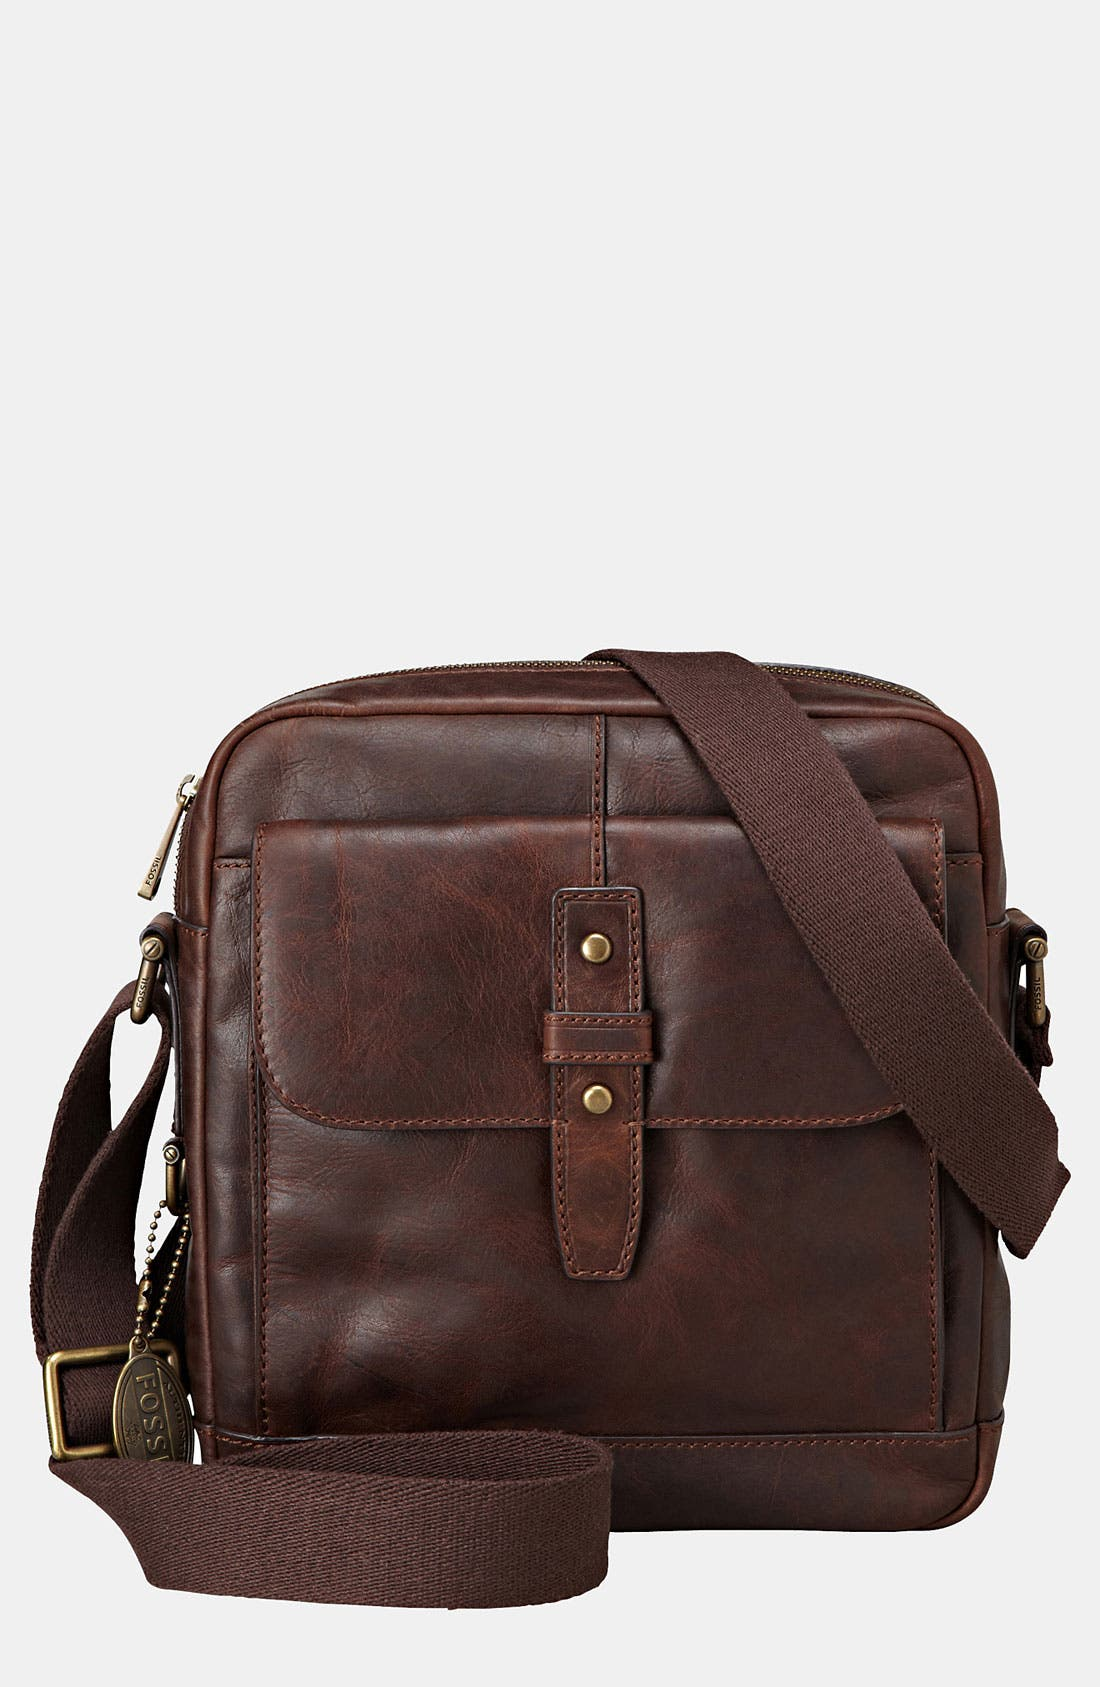 Alternate Image 1 Selected - Fossil 'Dillon' City Bag